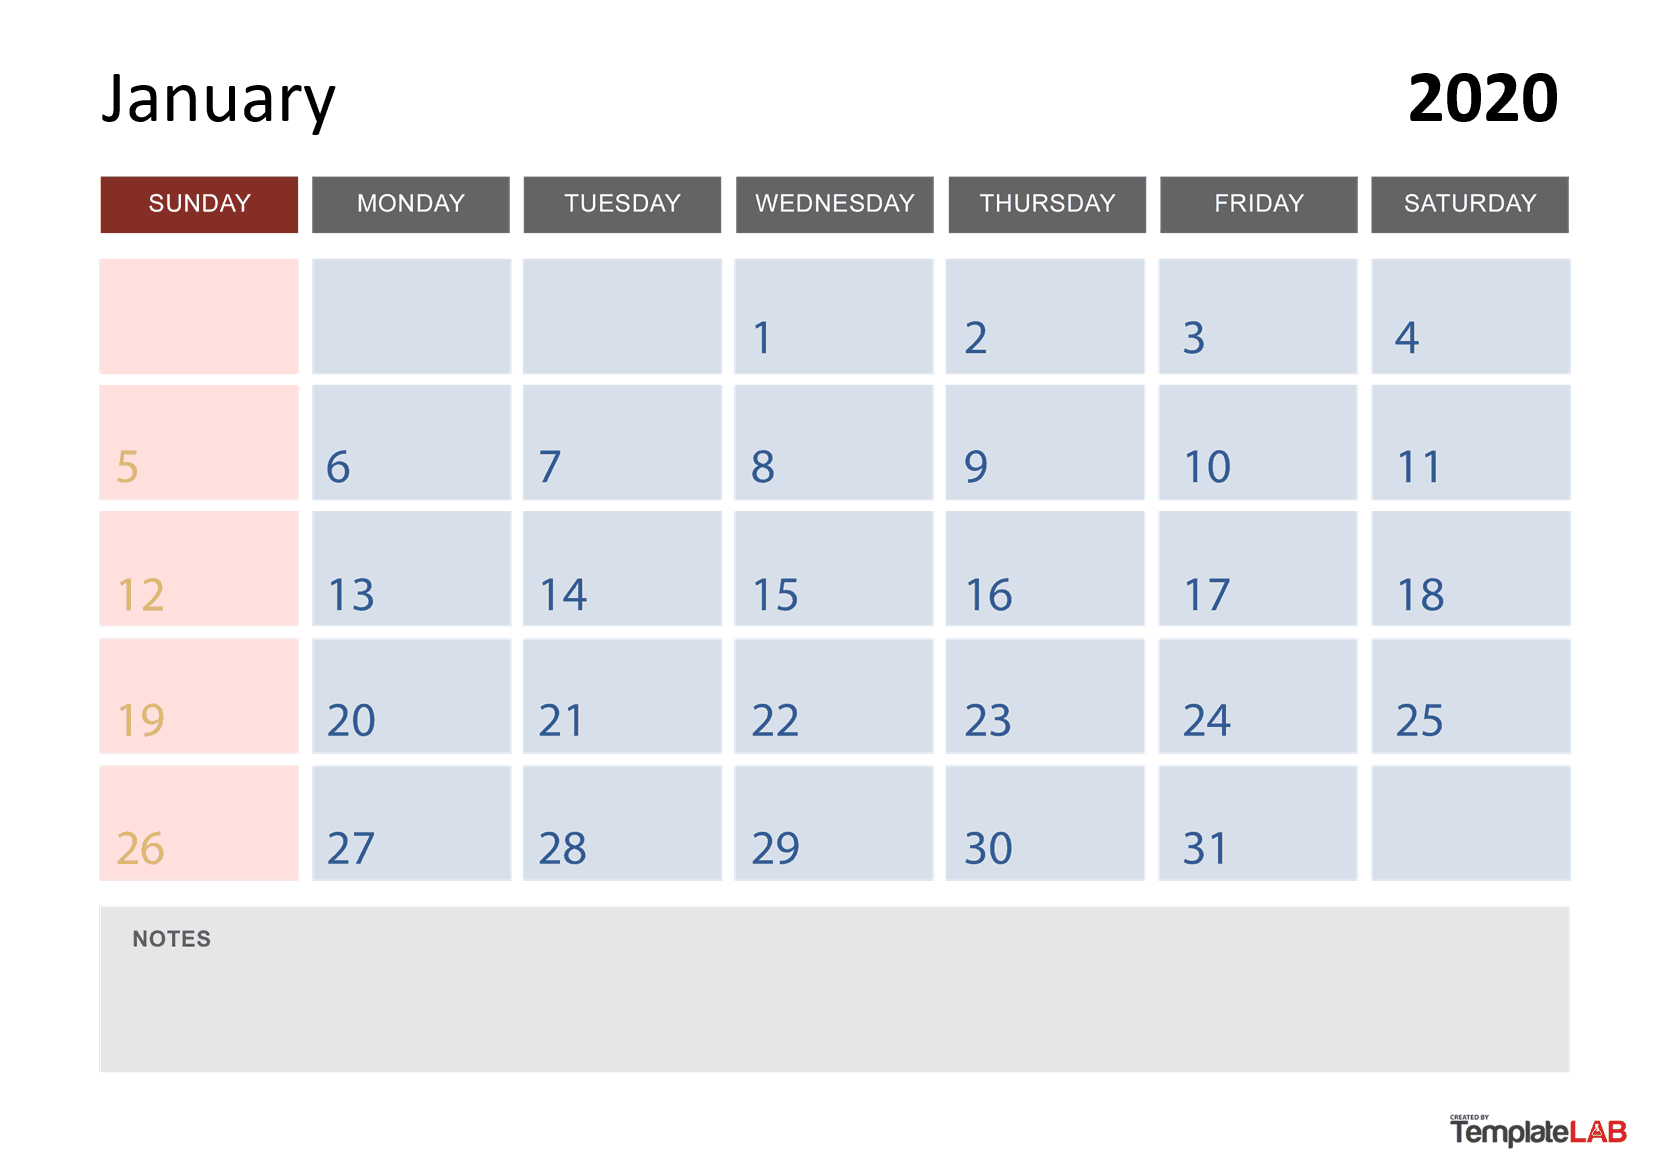 [%2020 Printable Calendars [Monthly, With Holidays, Yearly] ᐅ|Printable 2020 Calendar By Month|Printable 2020 Calendar By Month%]